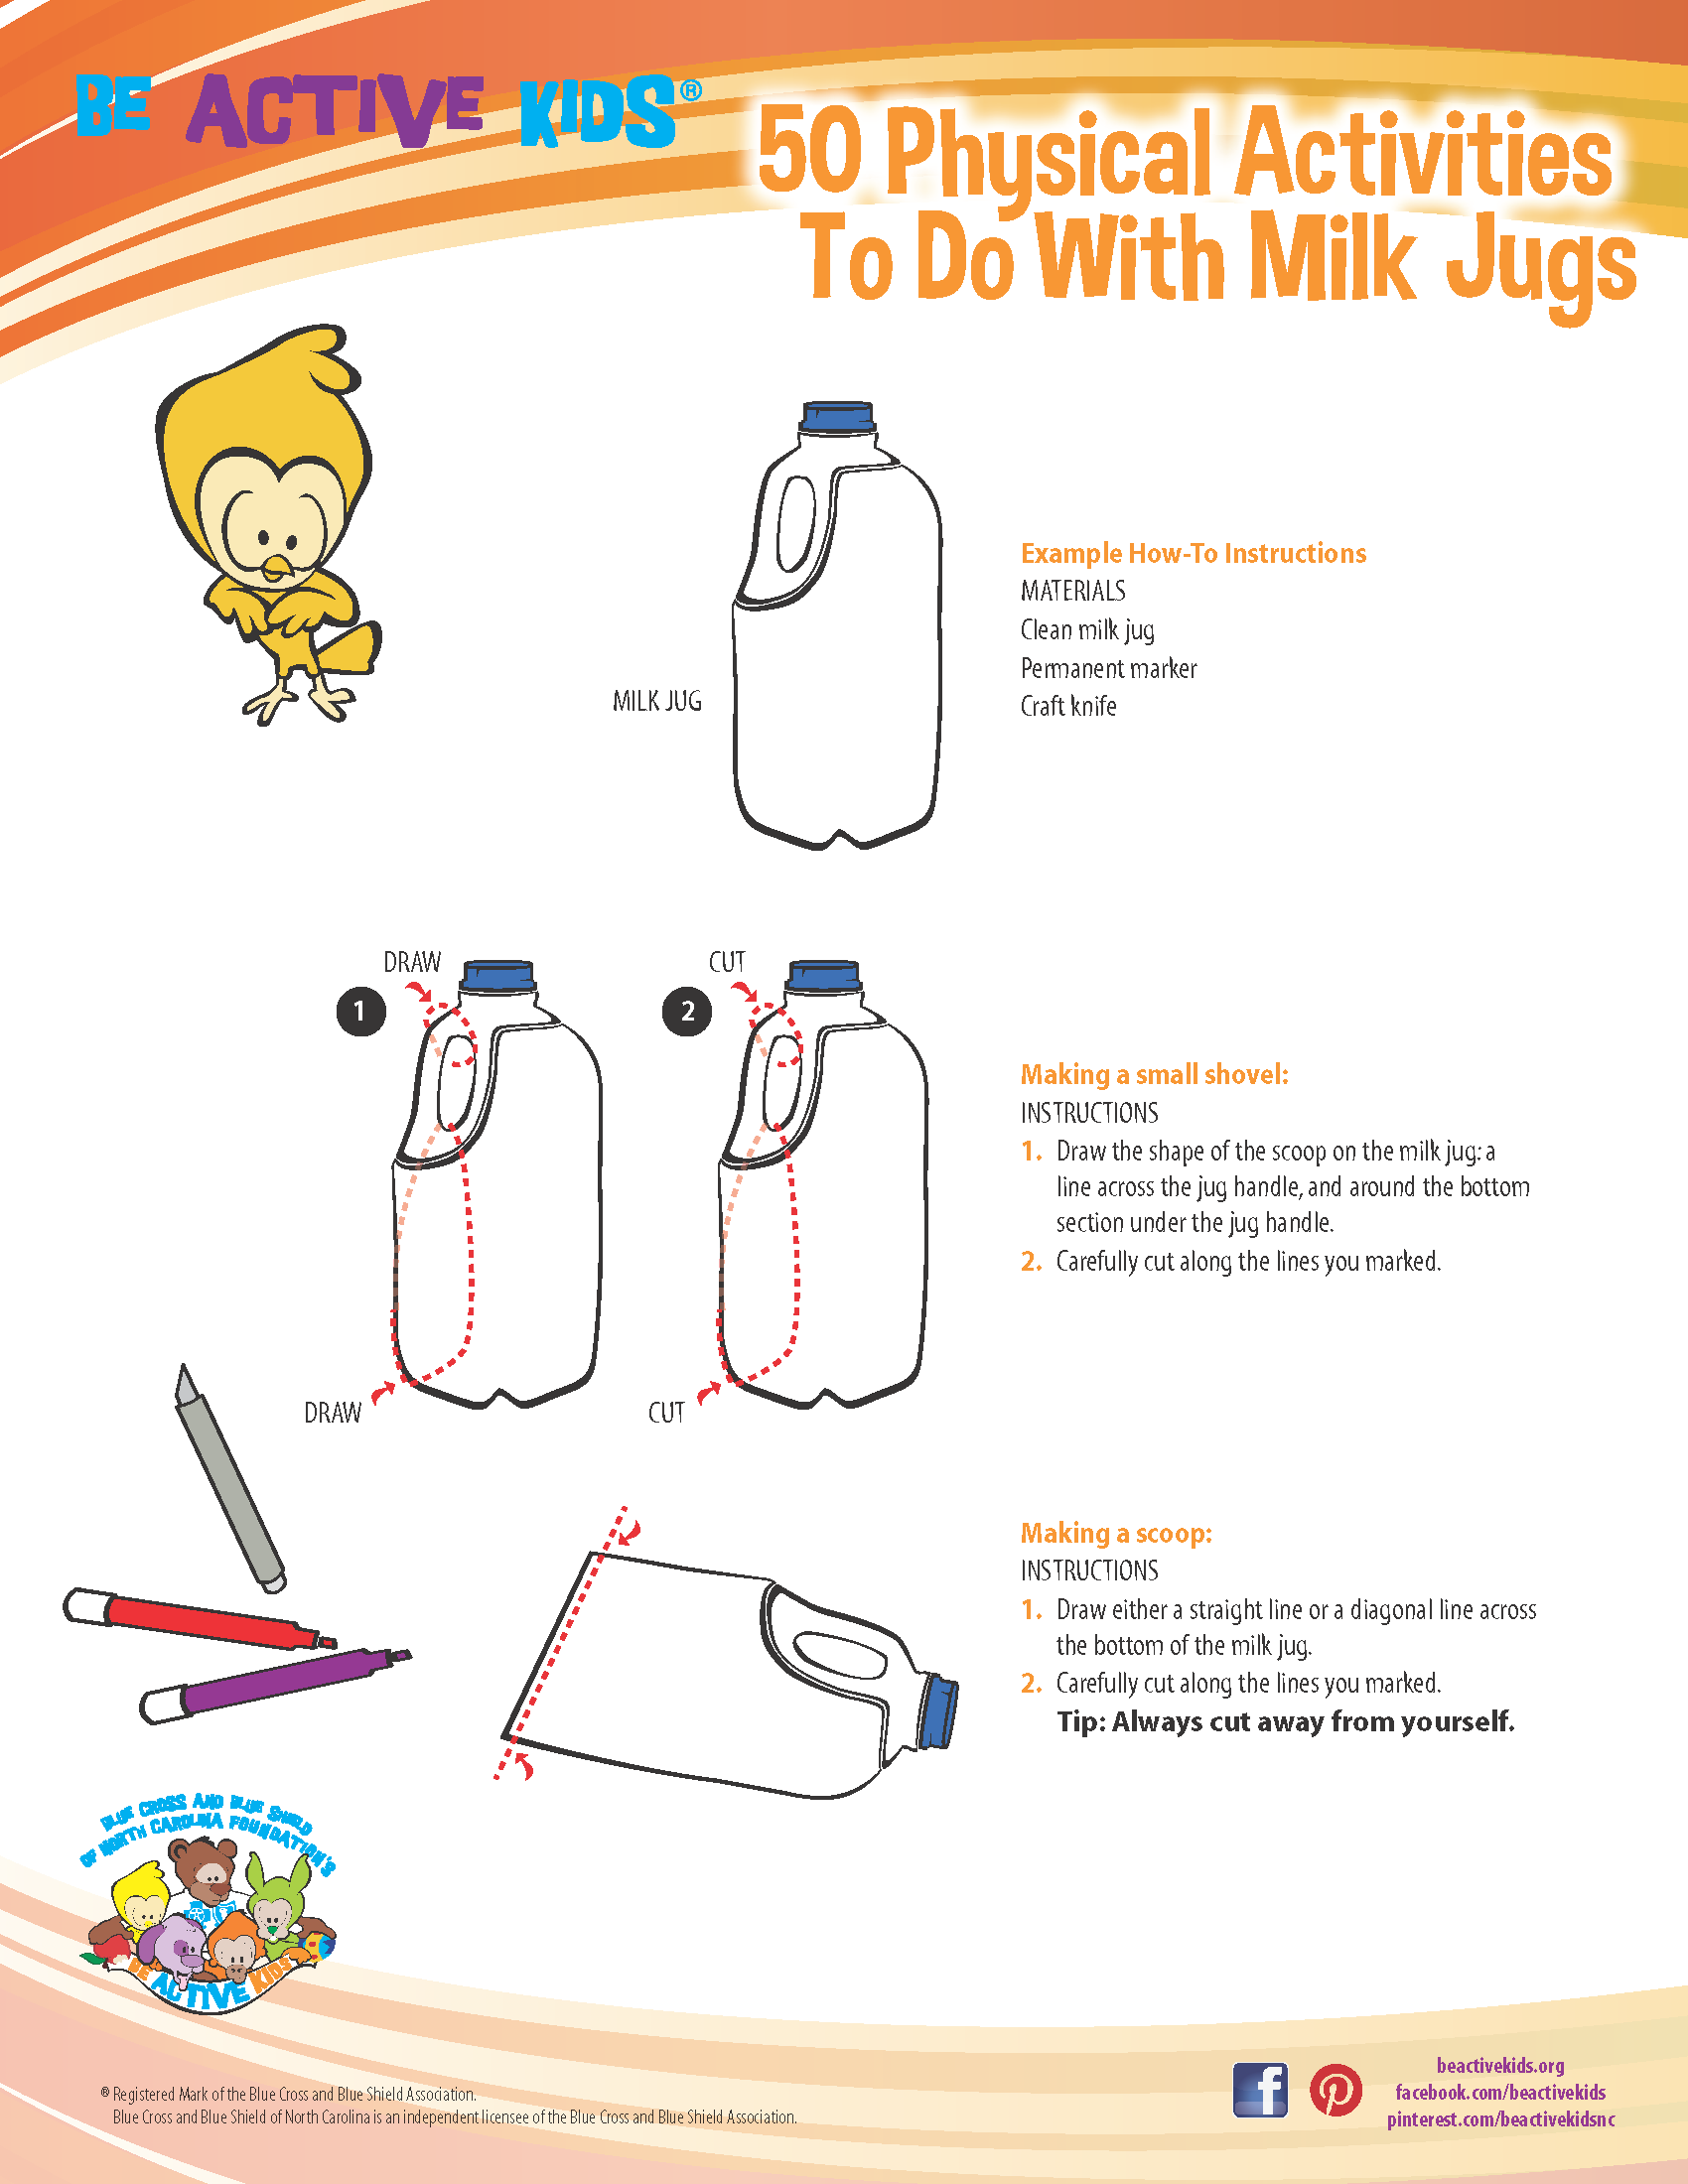 How to Make a Milk Jug Scoop